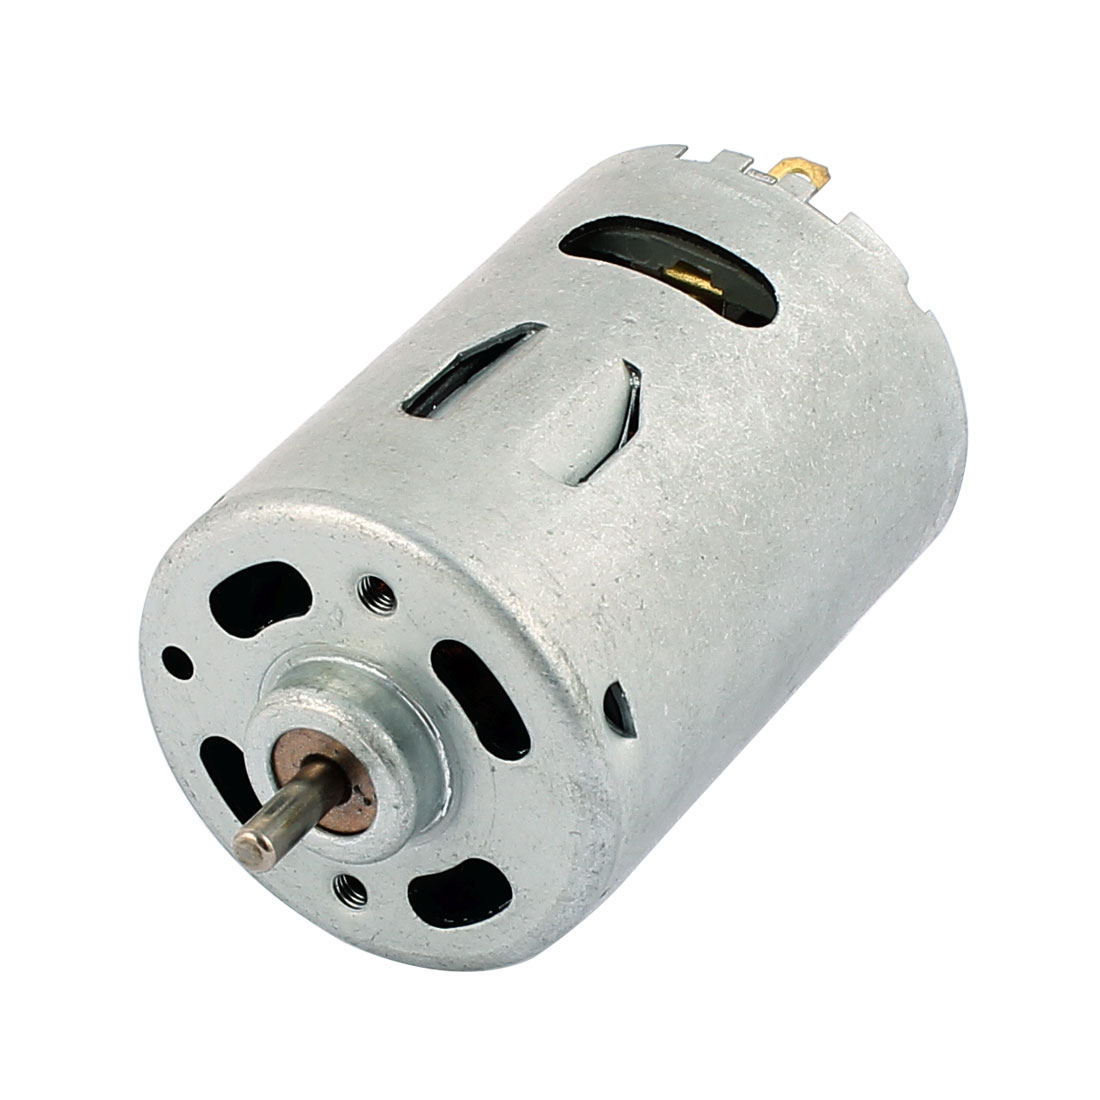 R545 DC 24V 4000RPM 2 Terminals Connecting Cylindrical Miniature Magnetic Motor